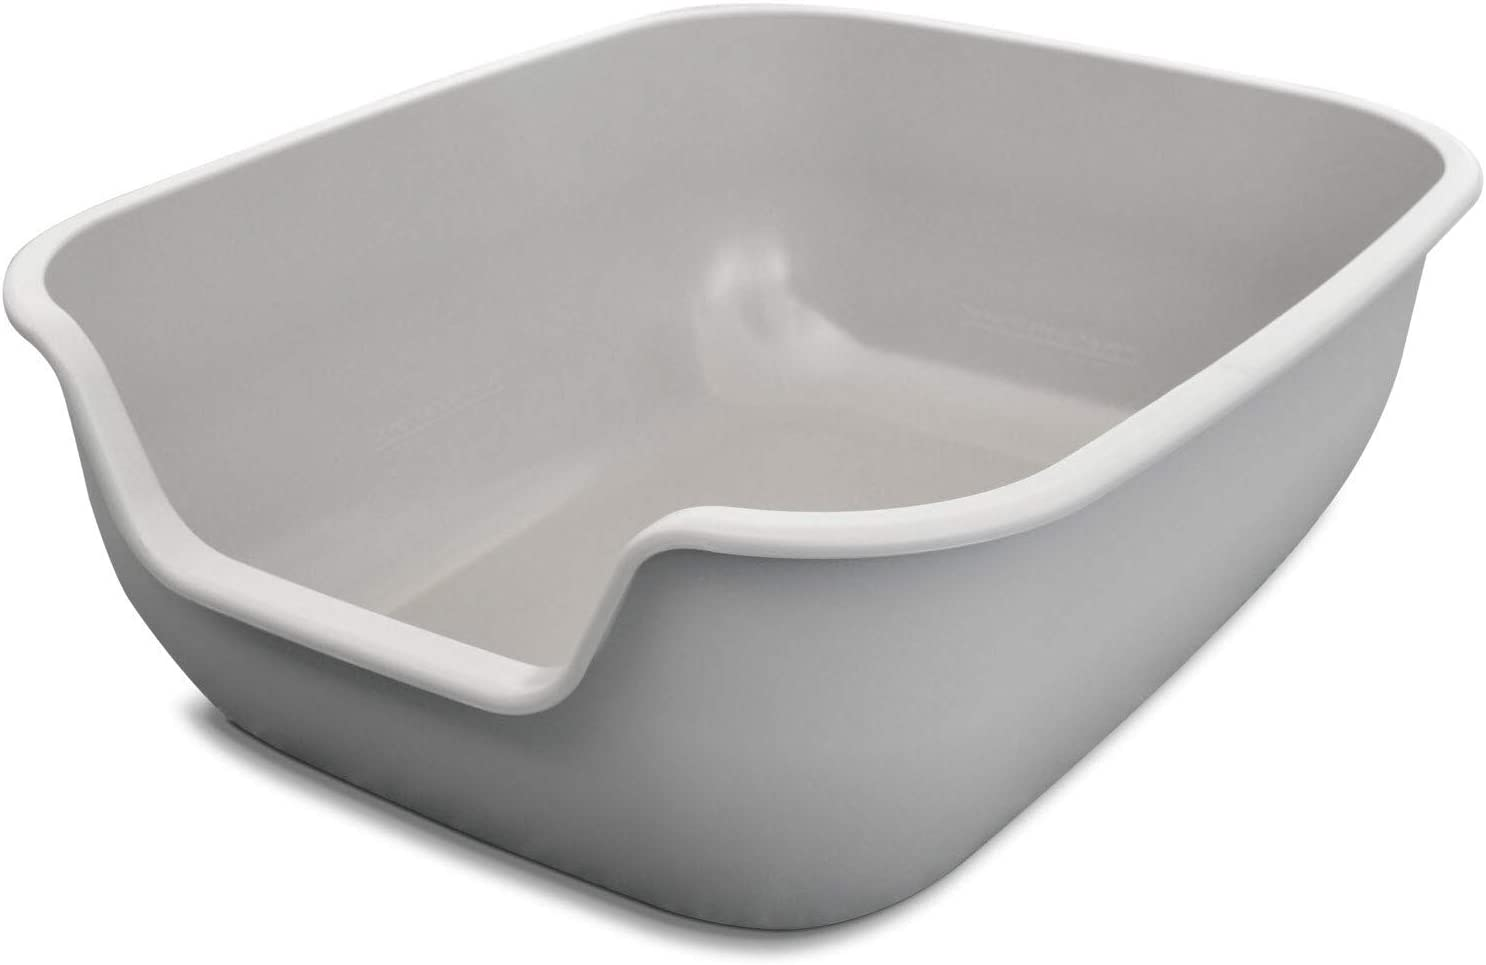 PetFusion Large Litter Box (the BetterBox). NON-STICK Coating (FDA, EPA approved) significantly reduces cleaning time. (Vets recommend open top litter box to avoid behavior issues associated with tight spaces and cat's stronger sense of smell)